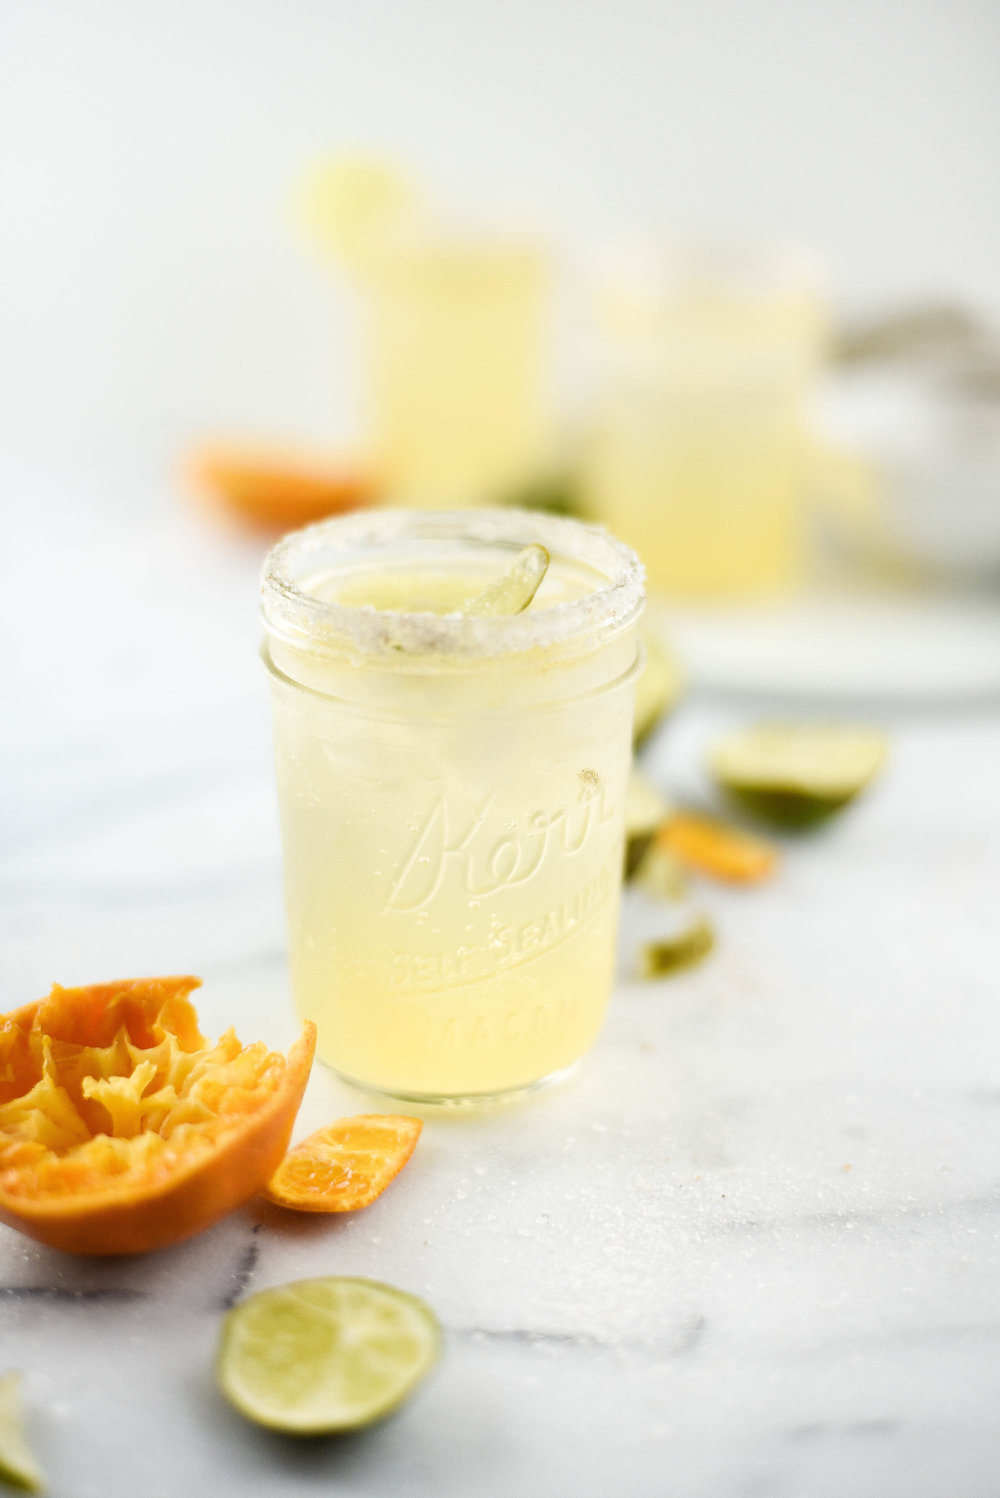 Super refreshing & not too sweet - this coconut margarita with LaCroix water is so yummy! boxwoodavenue.com